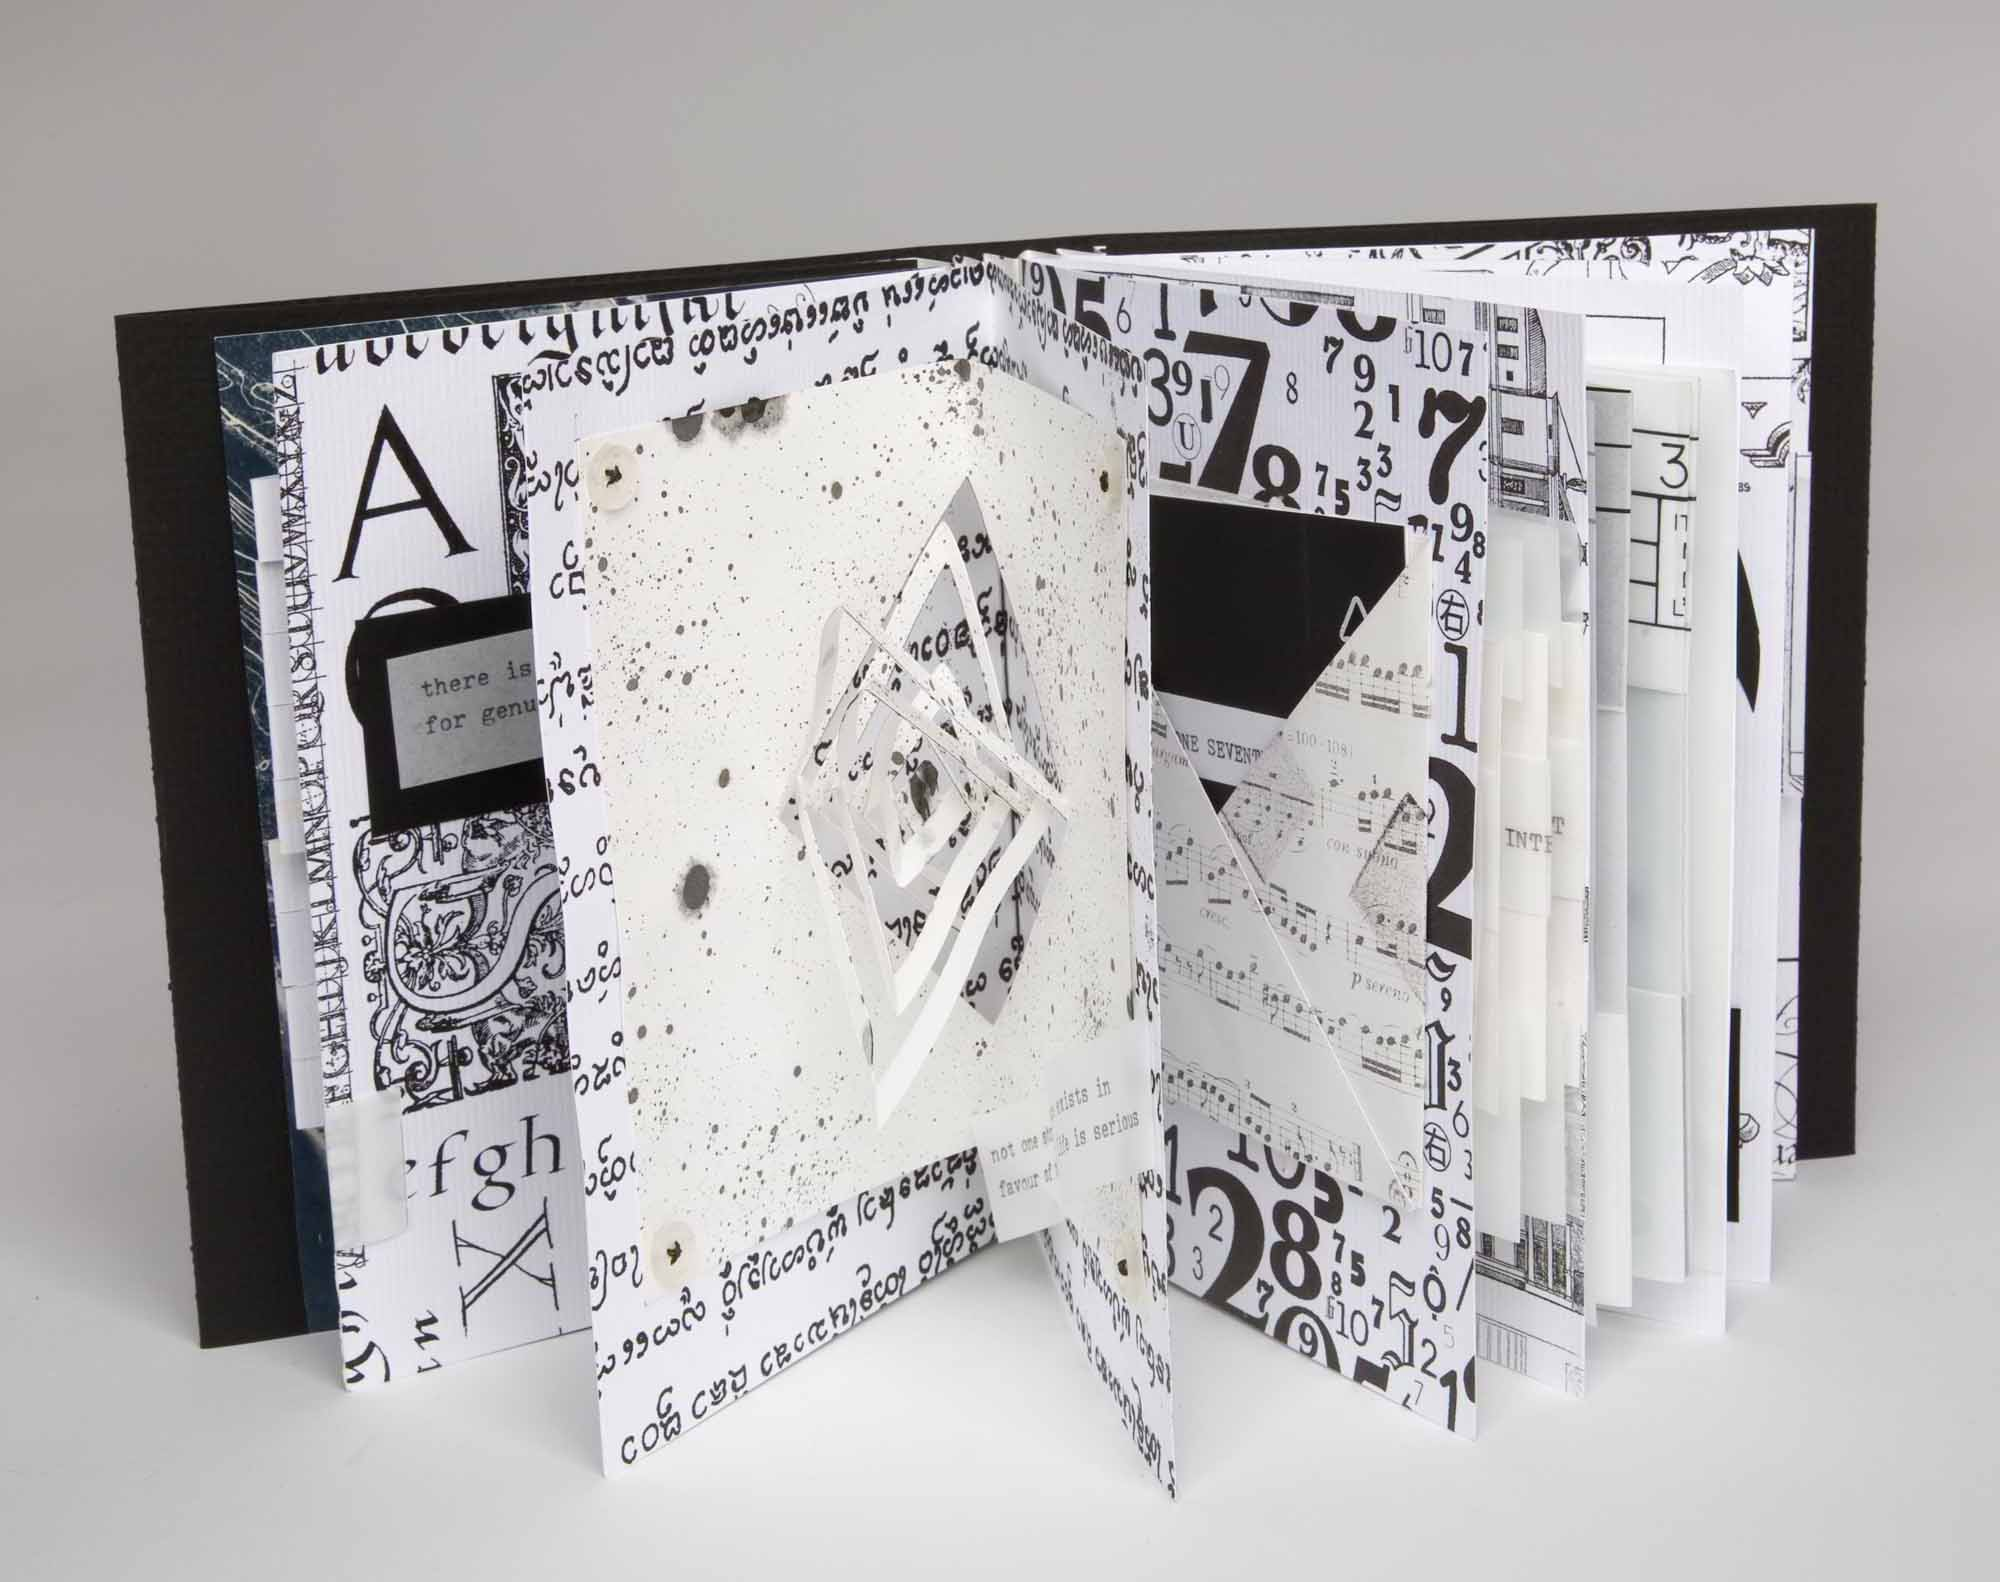 Artists' Books